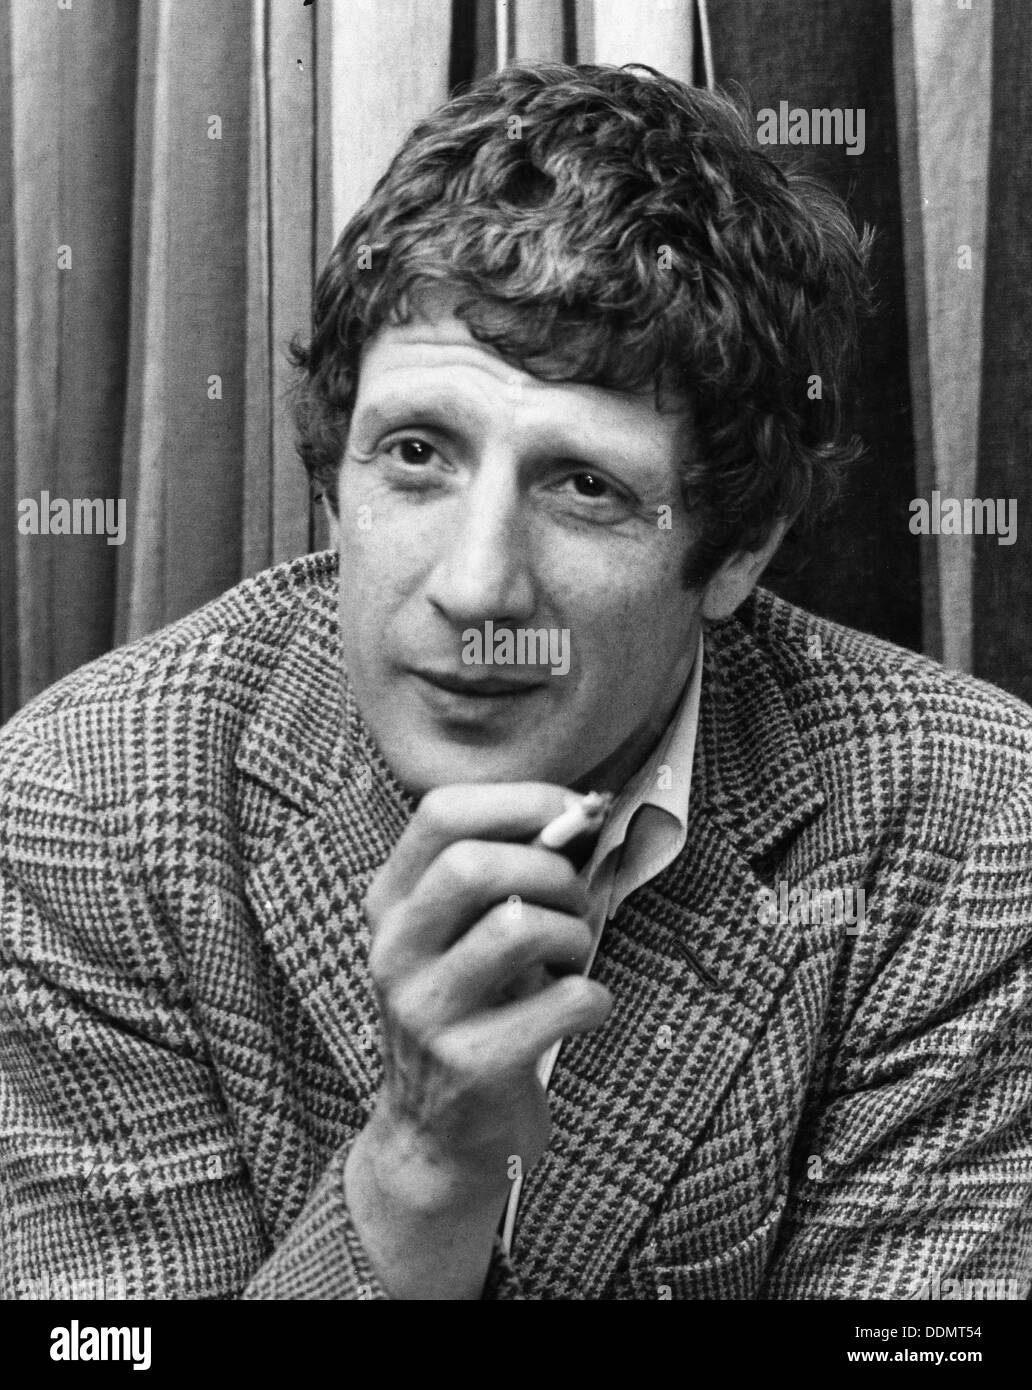 Jonathan Miller (1934- ), Producer, Writer and Journalist, 1974. - Stock Image